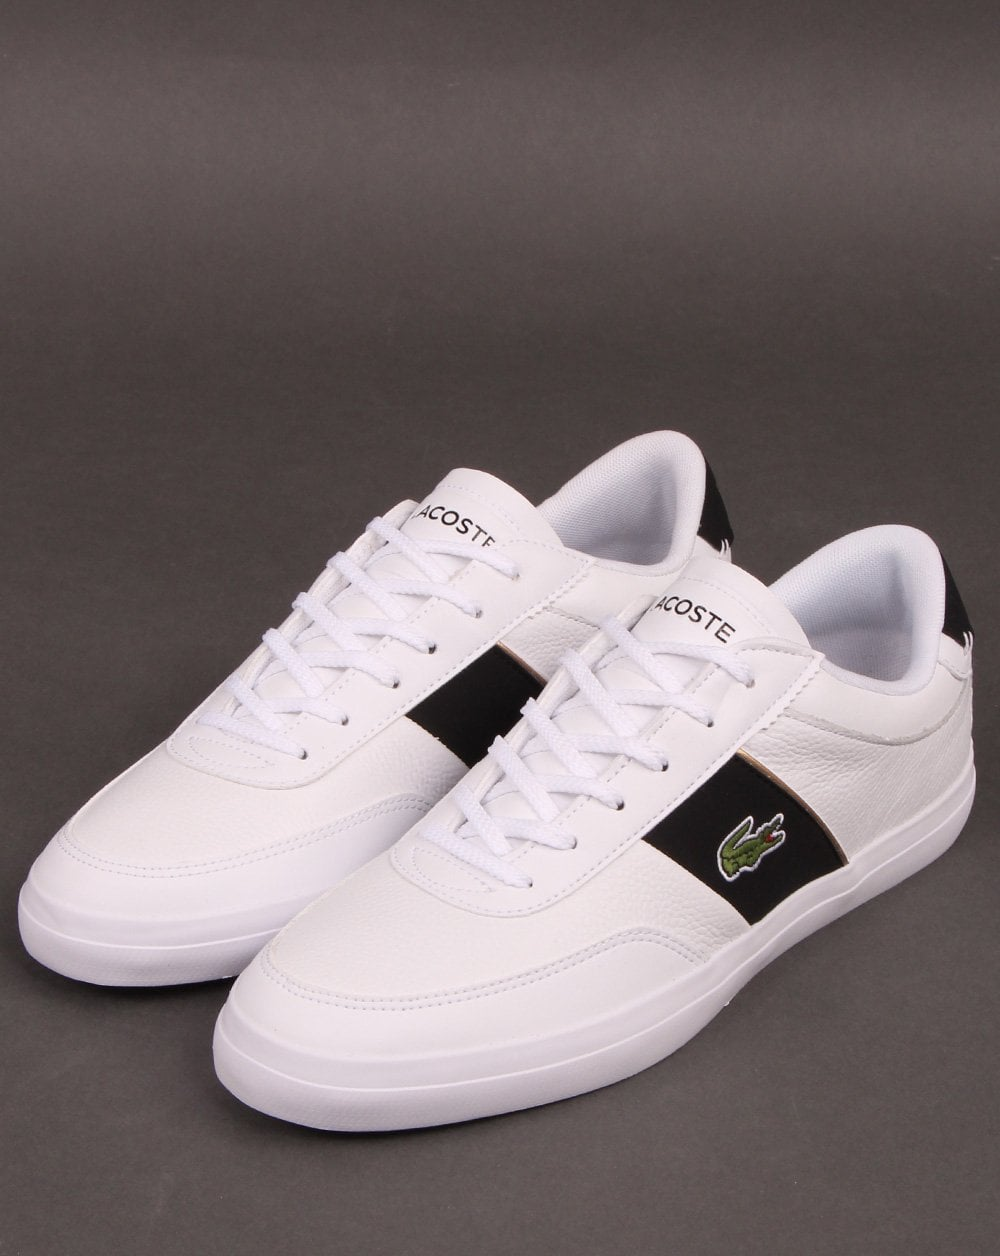 lacoste court master white - 64% OFF